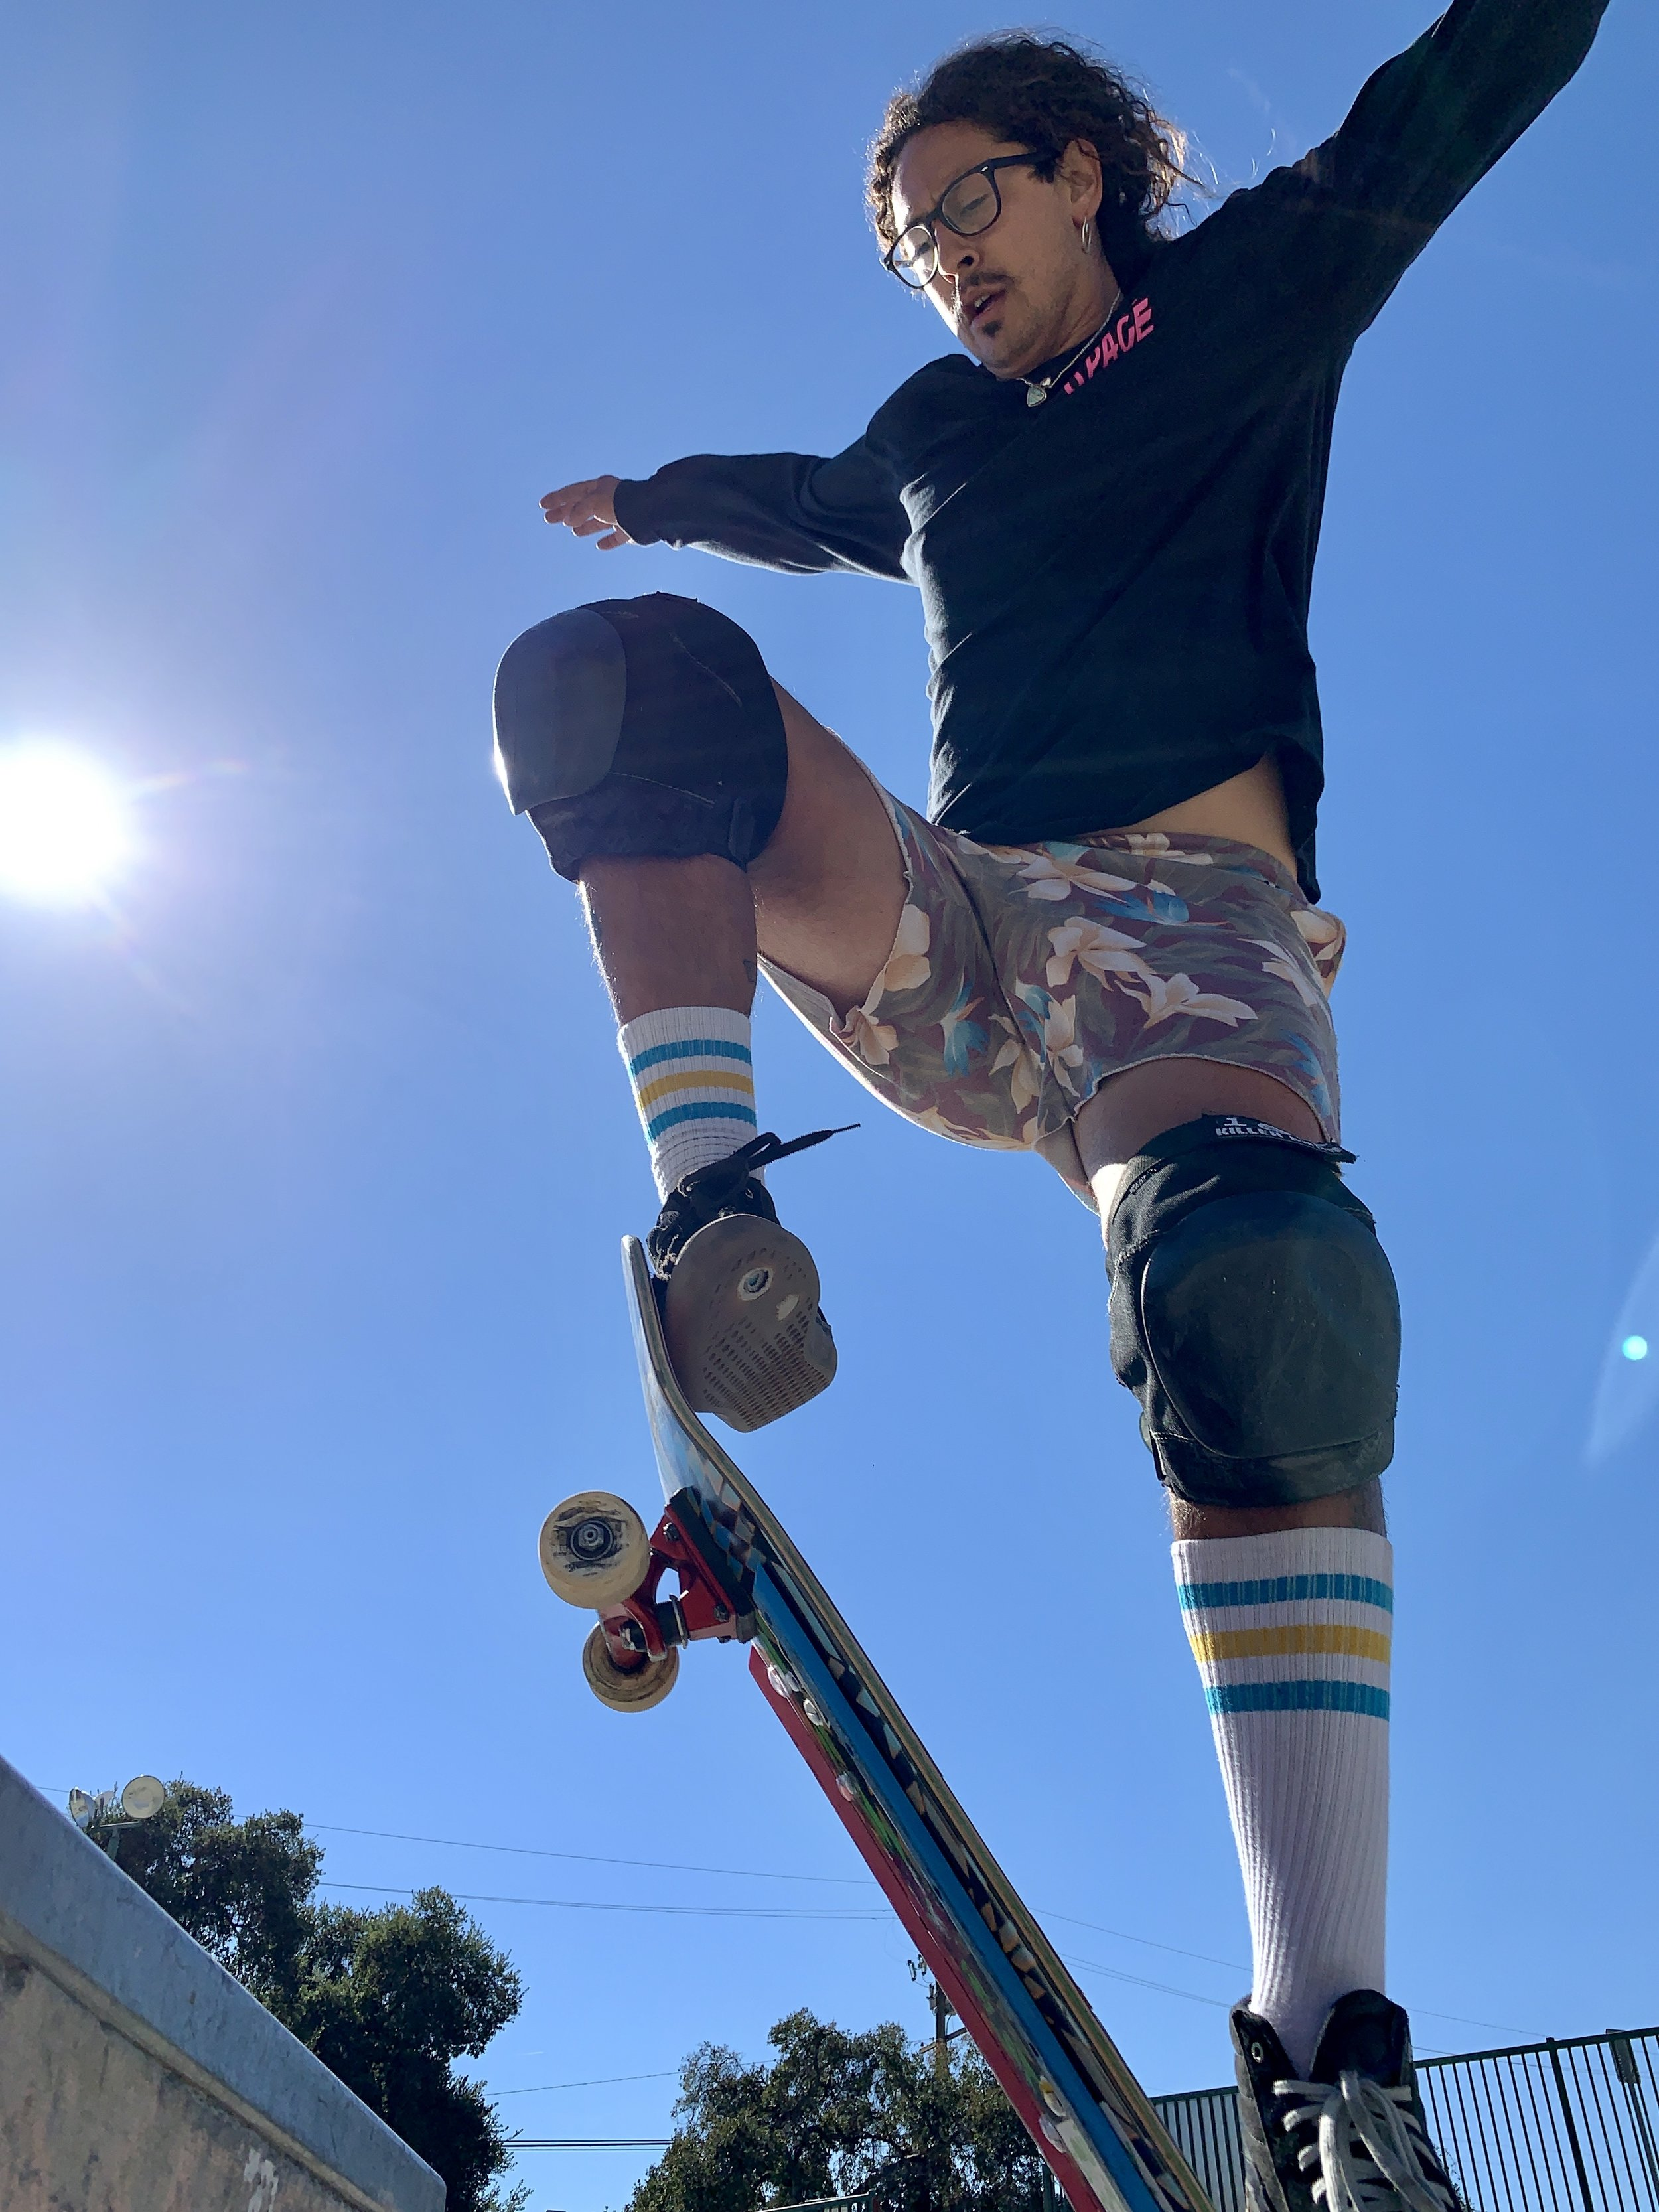 Hi! I'm Jason. - I'm the founder and co-owner of Southbay Sk8kids. Our school was established in 2015 with the mission to spread my love of skateboarding to the next generation! With over 300 students in our growing community nothing satisfies me more than passing on this lifelong skill. I look forward to meeting you!Book a session with Jason ➝